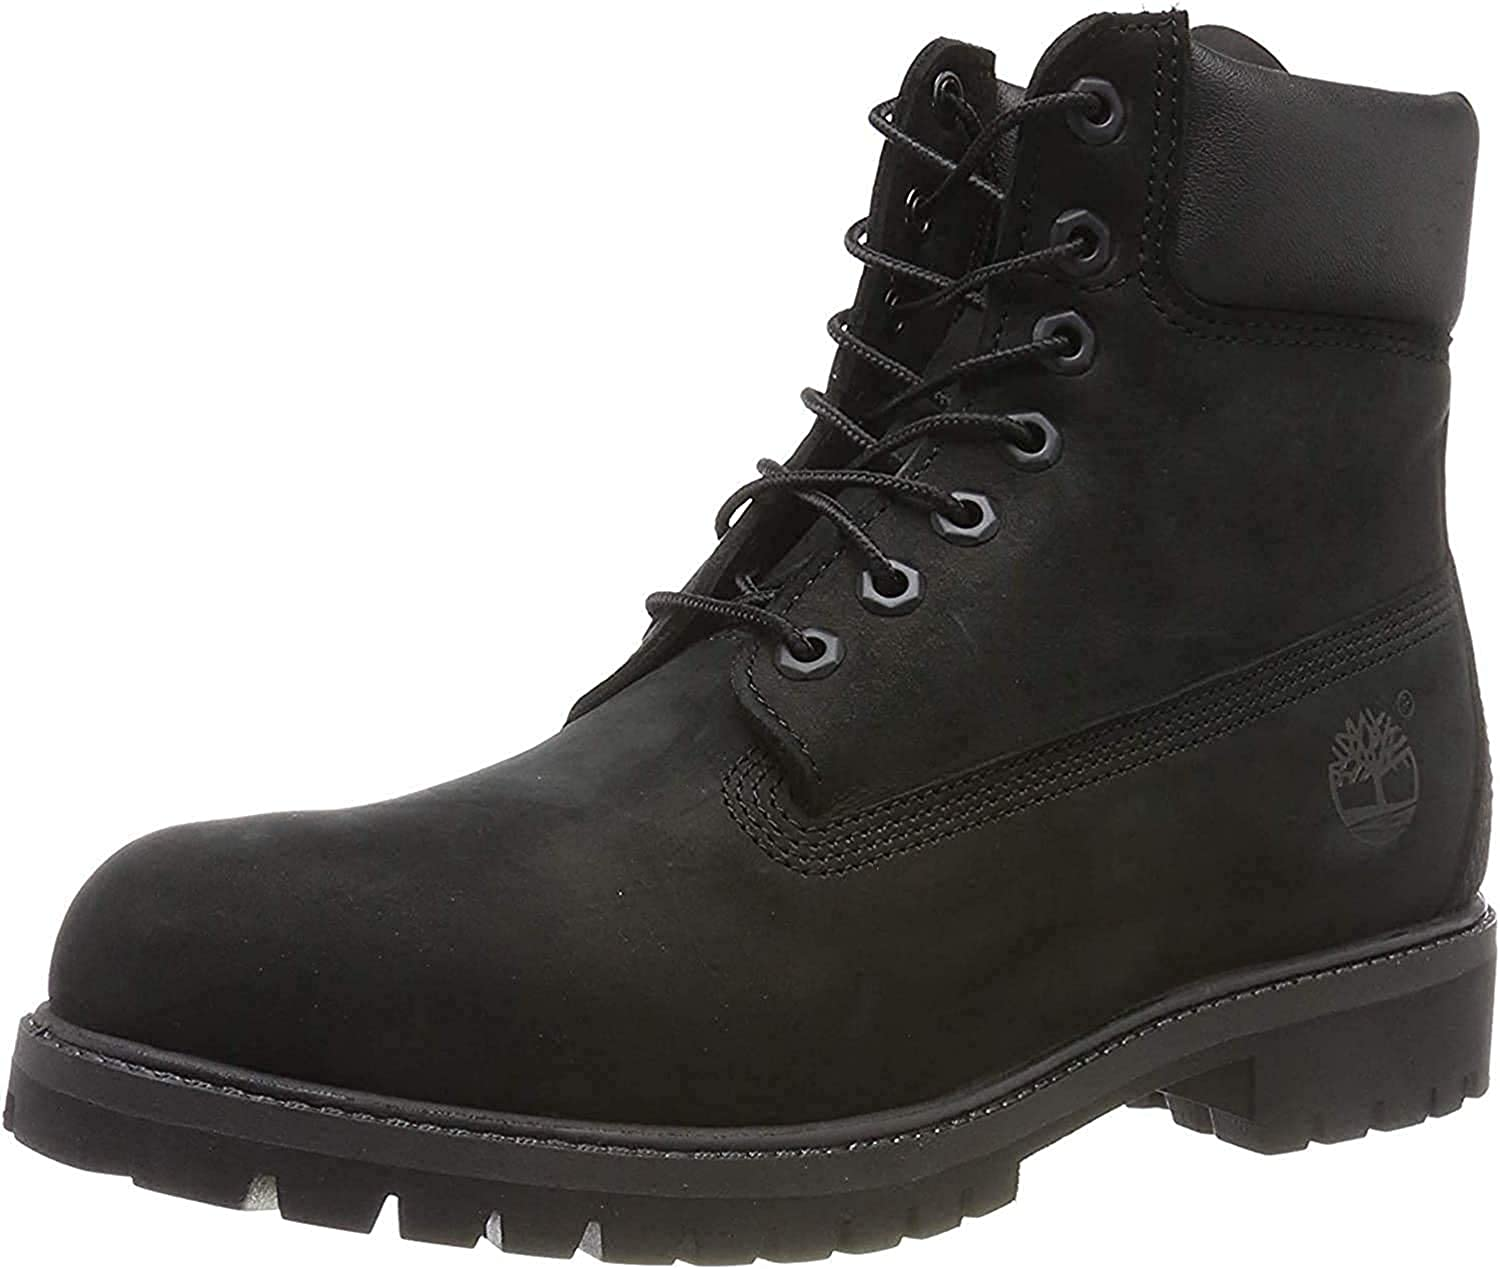 dígito Me sorprendió flor  Timberland Men's 6 Inch Premium Waterproof Boots: Amazon.co.uk: Shoes & Bags